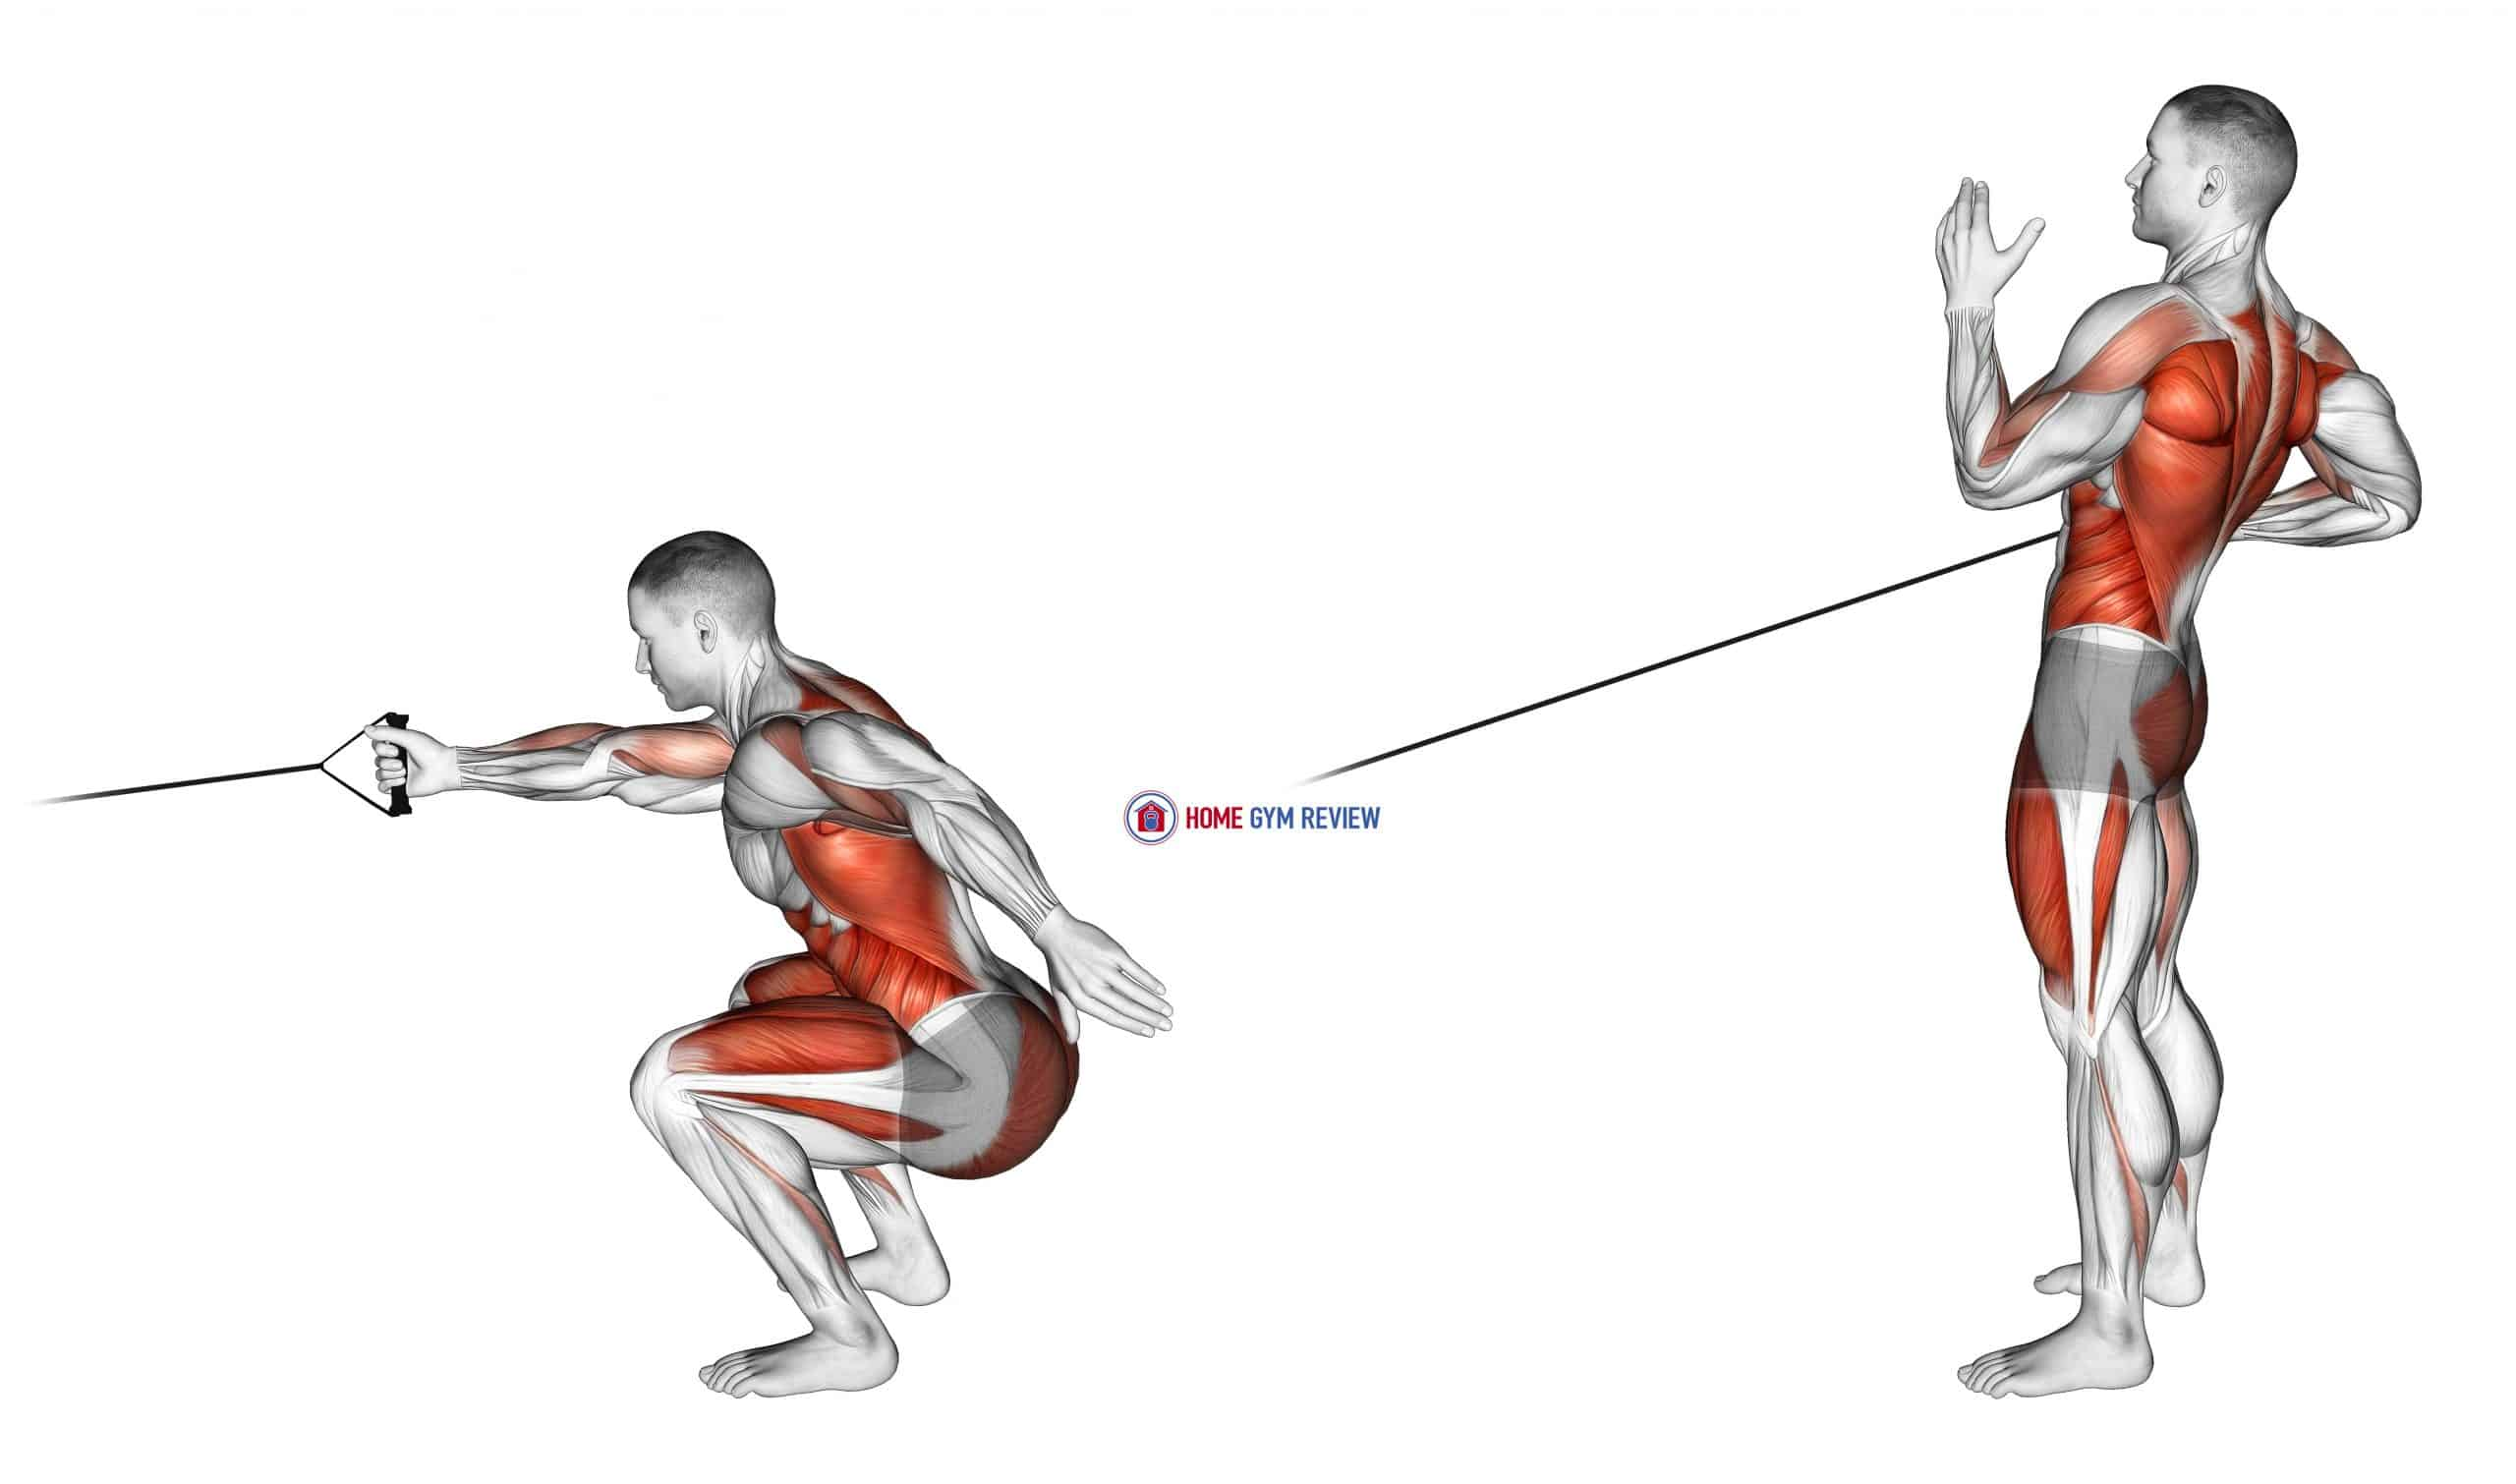 Band Squat with Single Arm Row